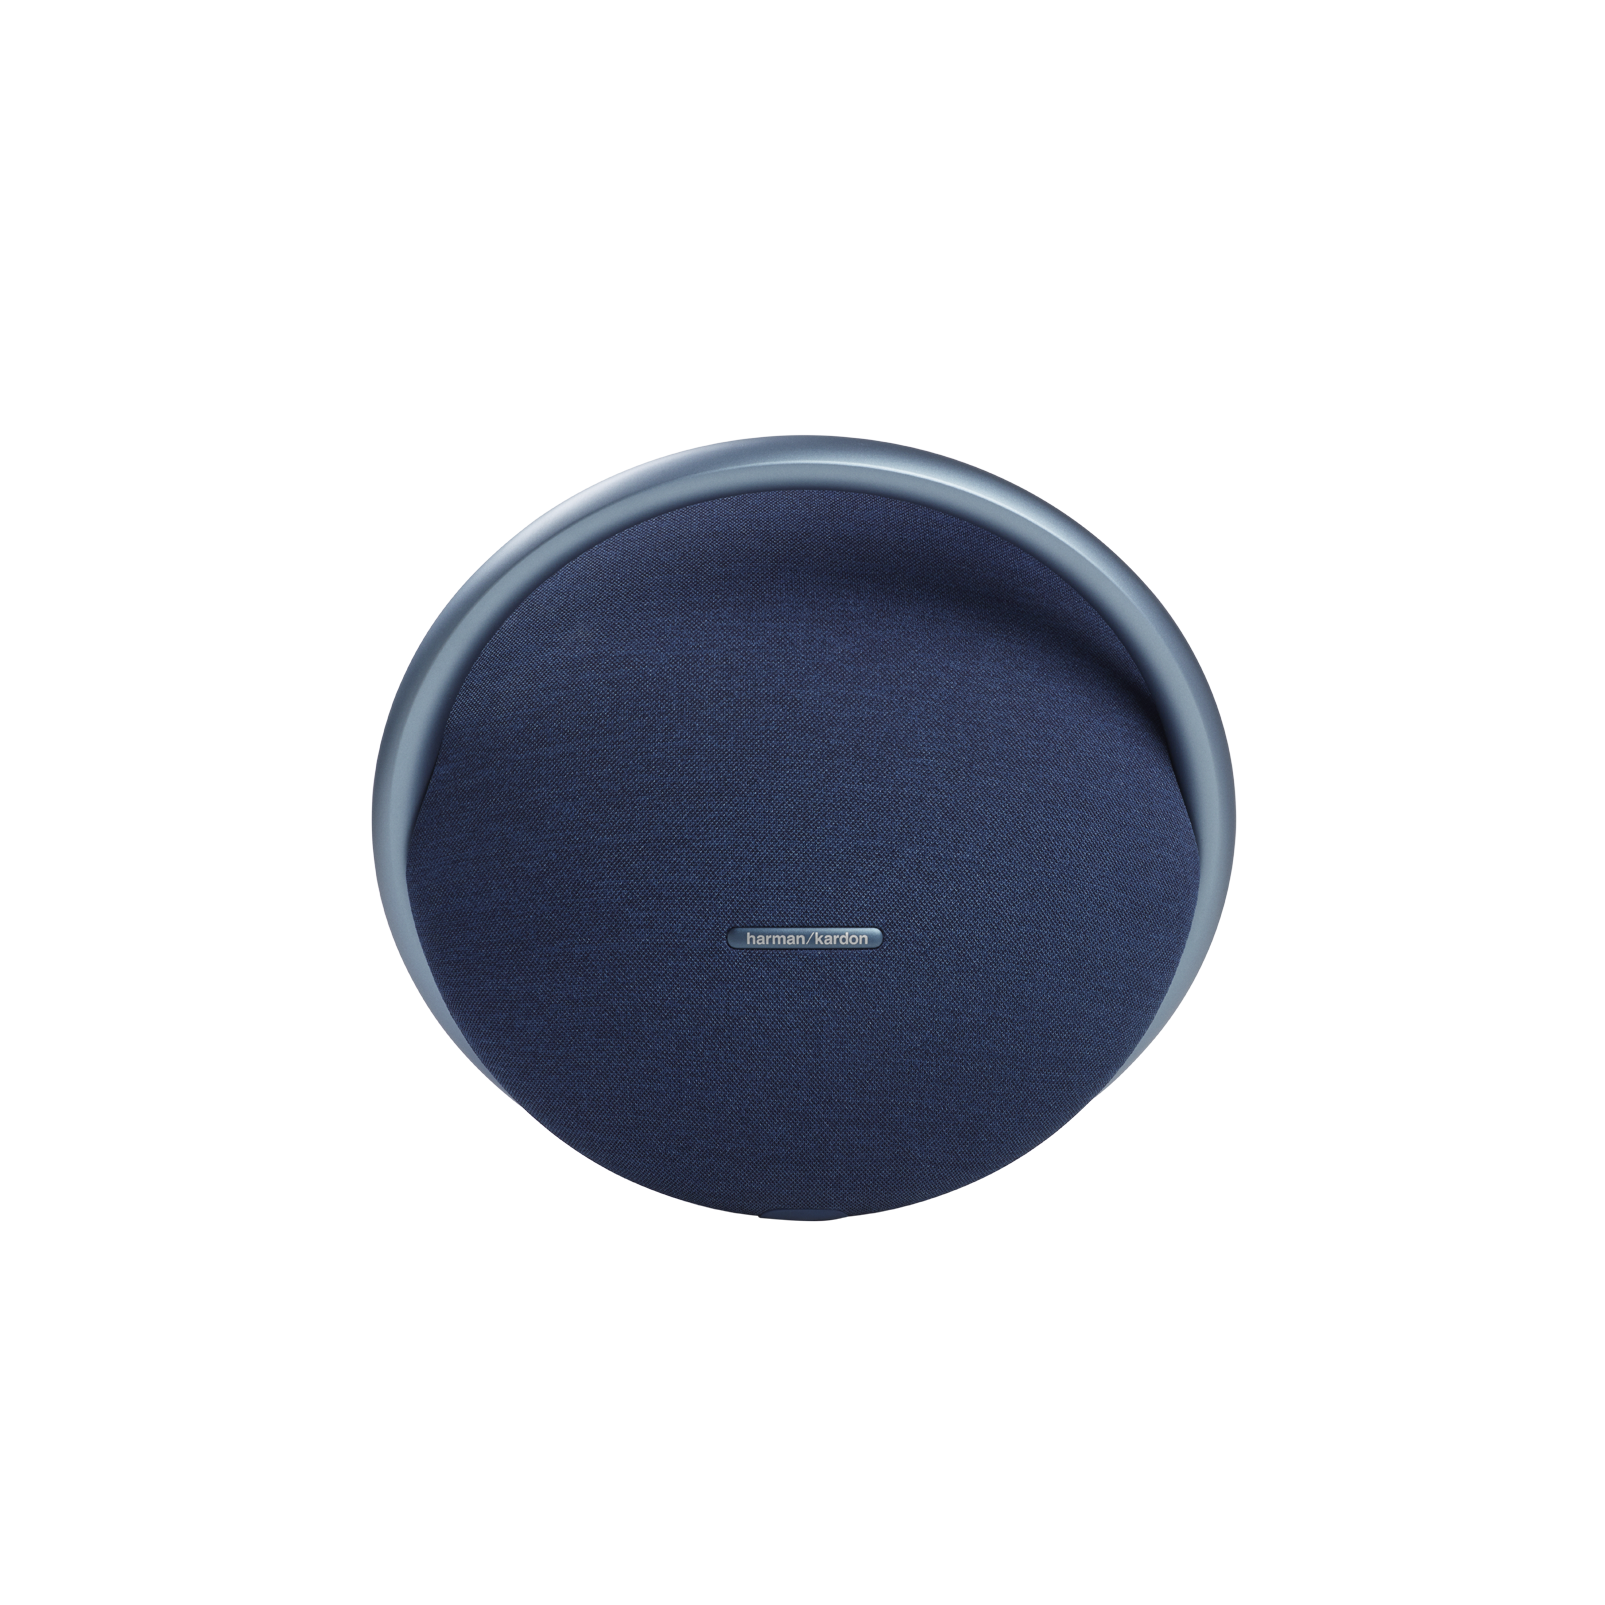 Onyx Studio 7 - Blue - Portable Stereo Bluetooth Speaker - Front